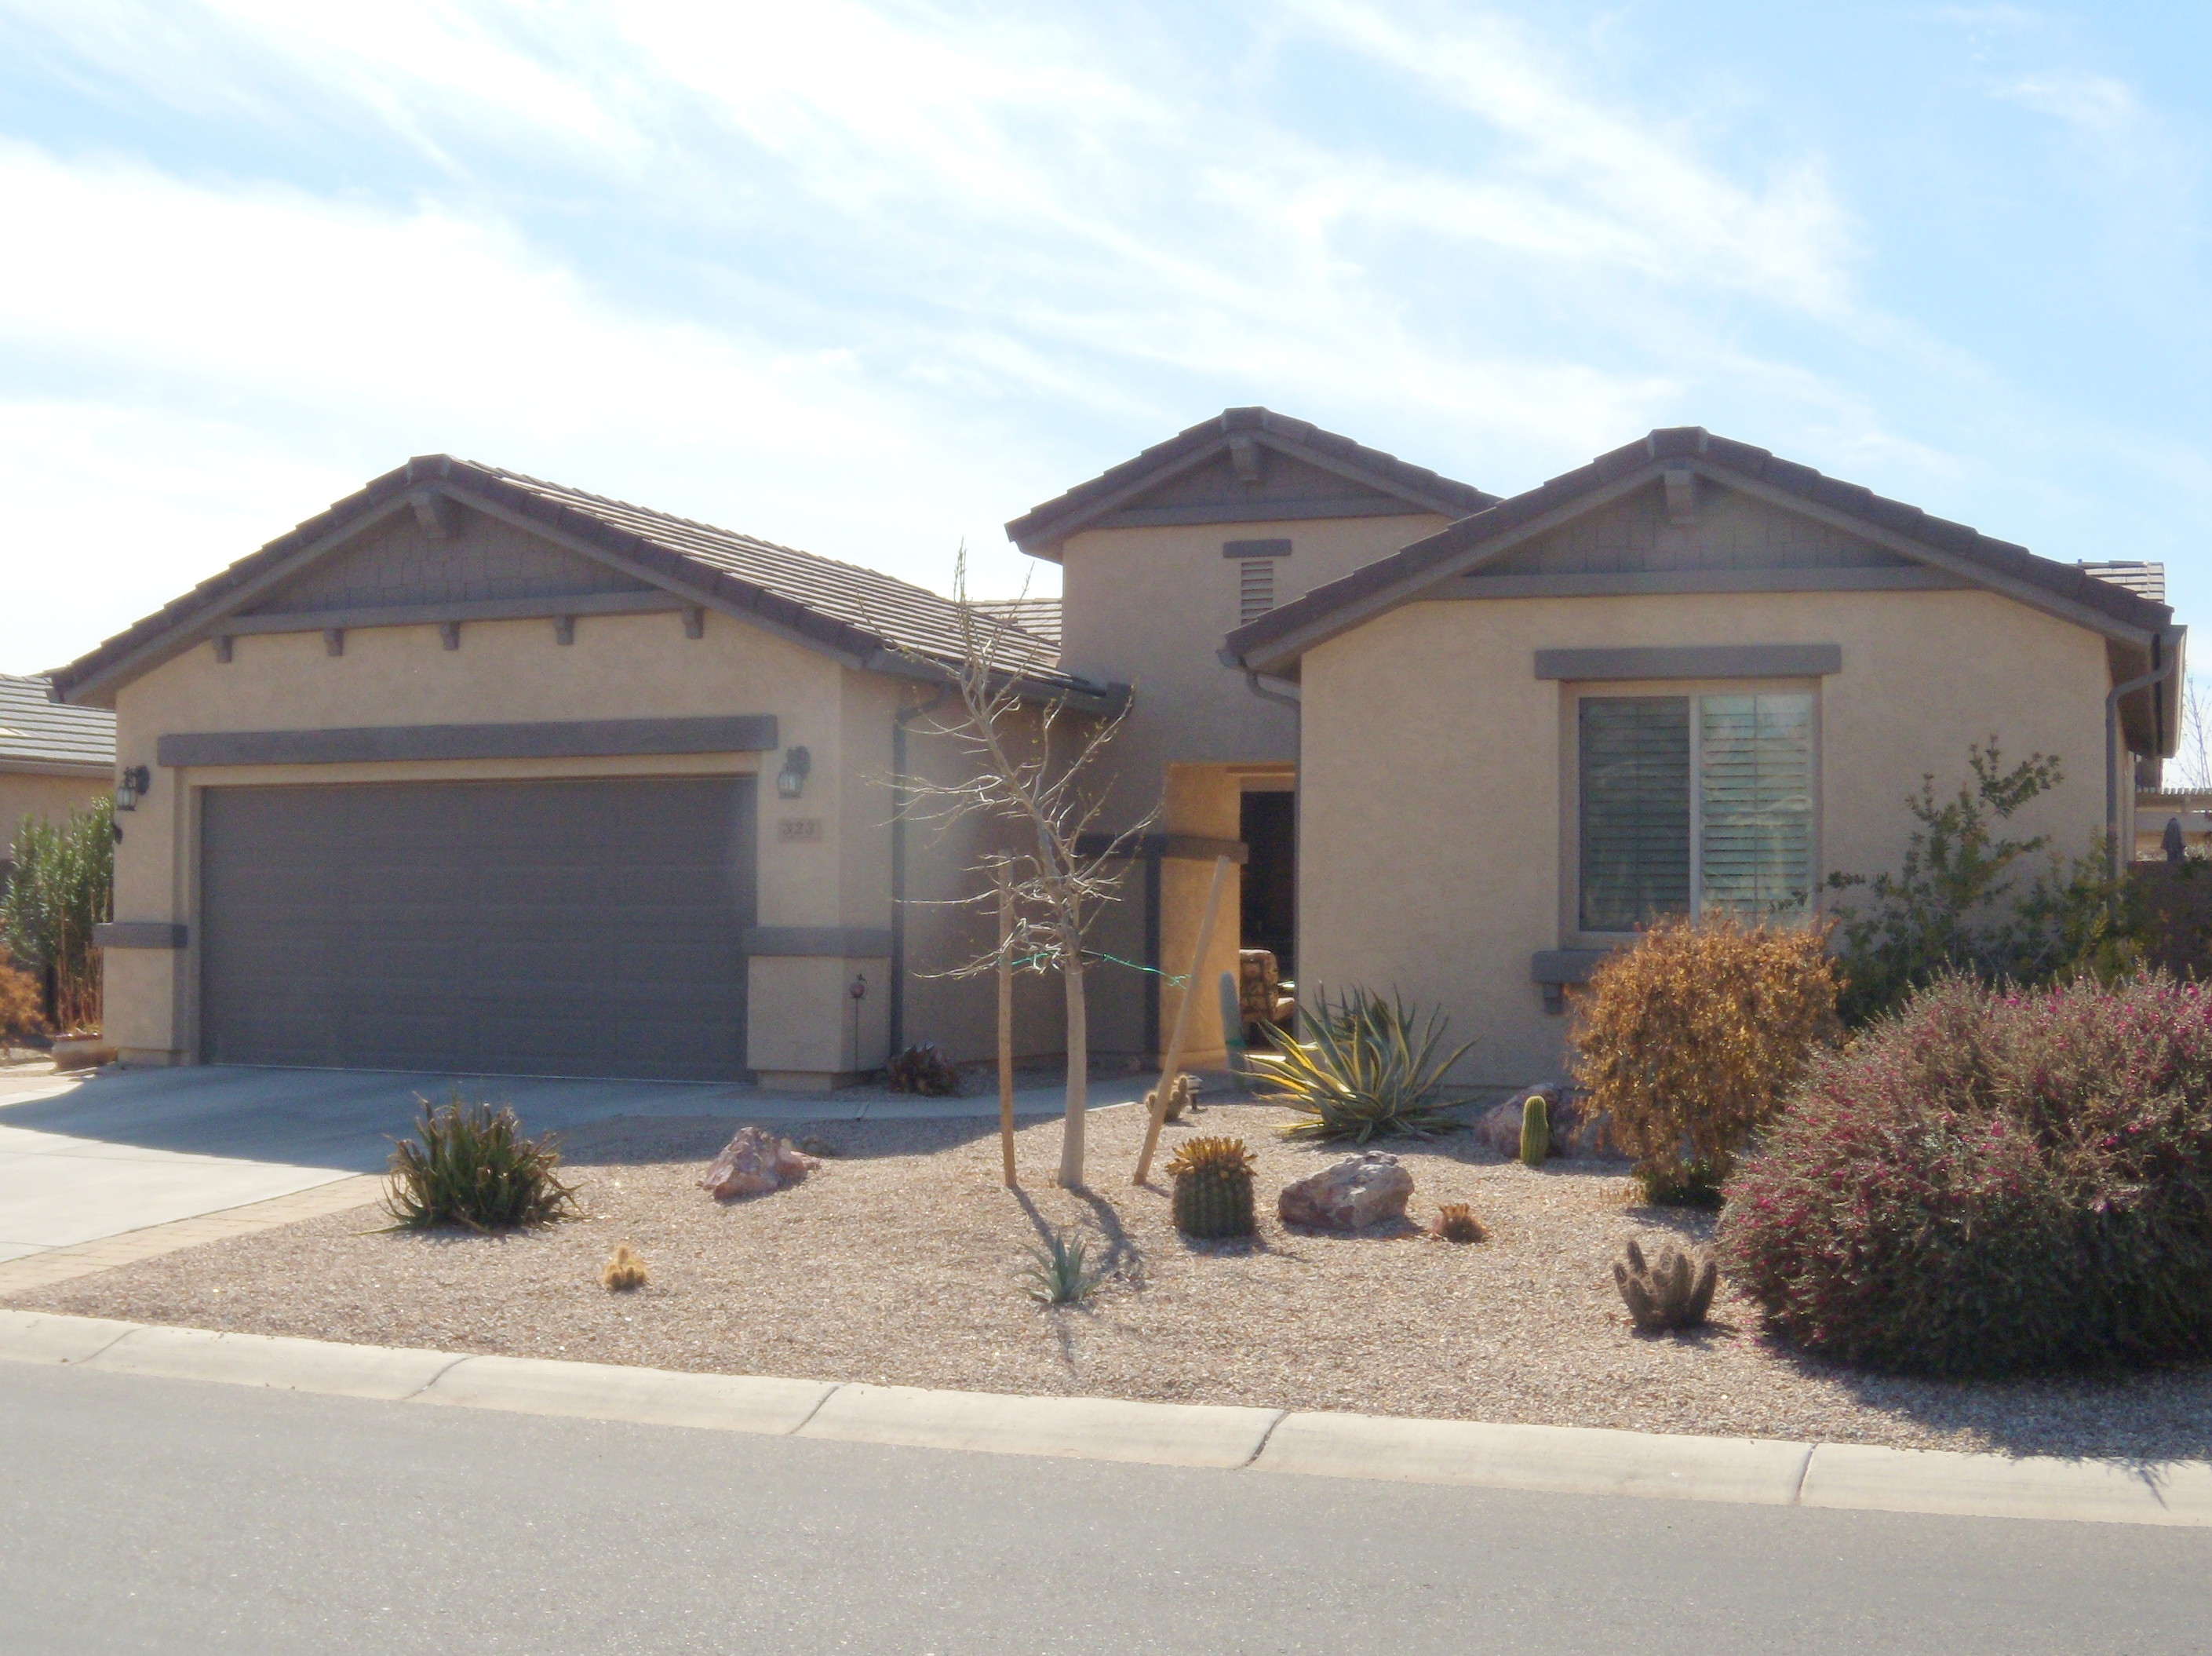 323 W Bismark St,San Tan Valley,AZ